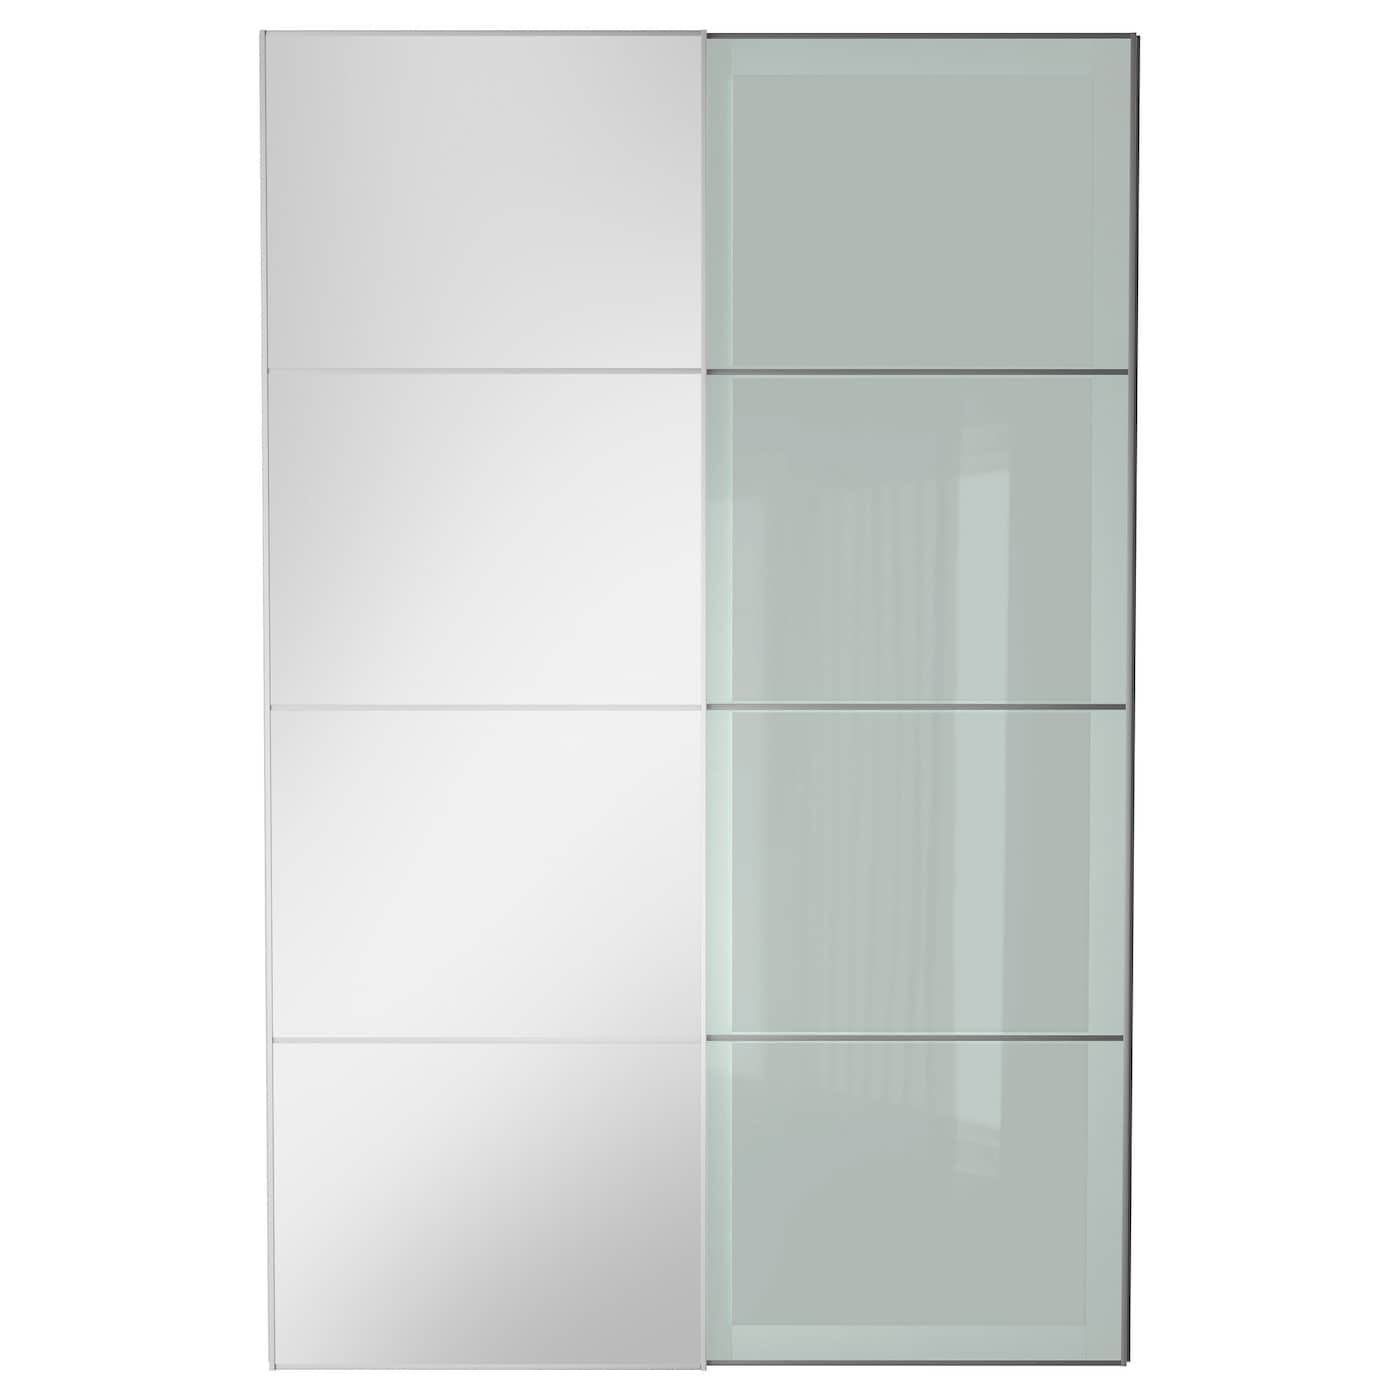 auli sekken pair of sliding doors mirror glass frosted